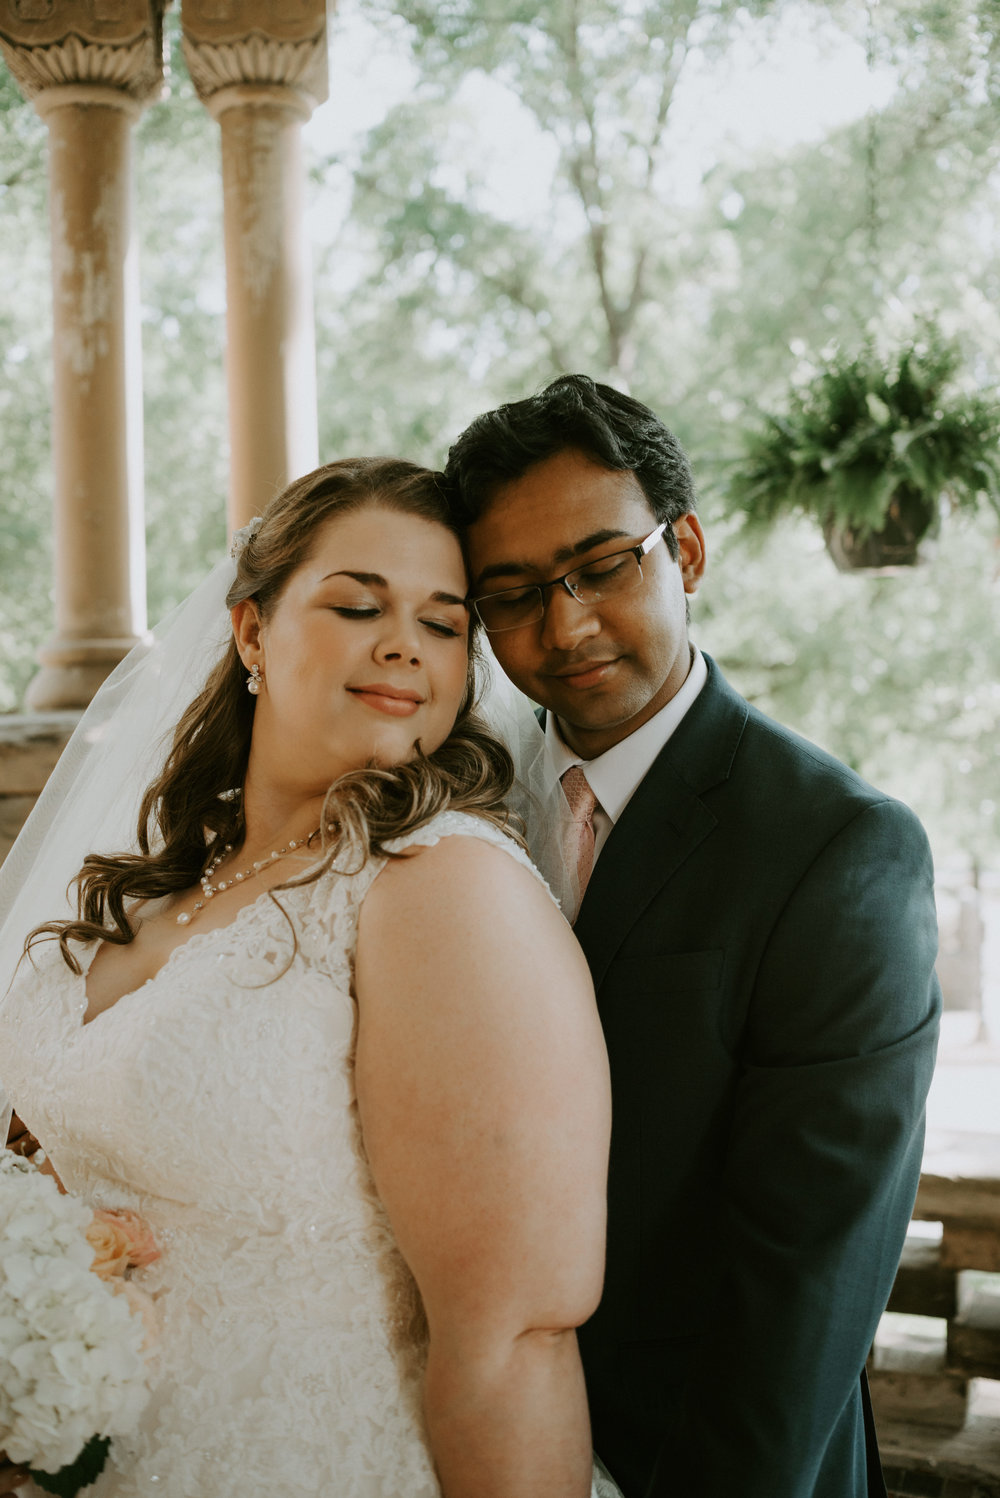 WonderlyCreative_Wedding_5.12.18_Megan&Swapnil_-575.jpg